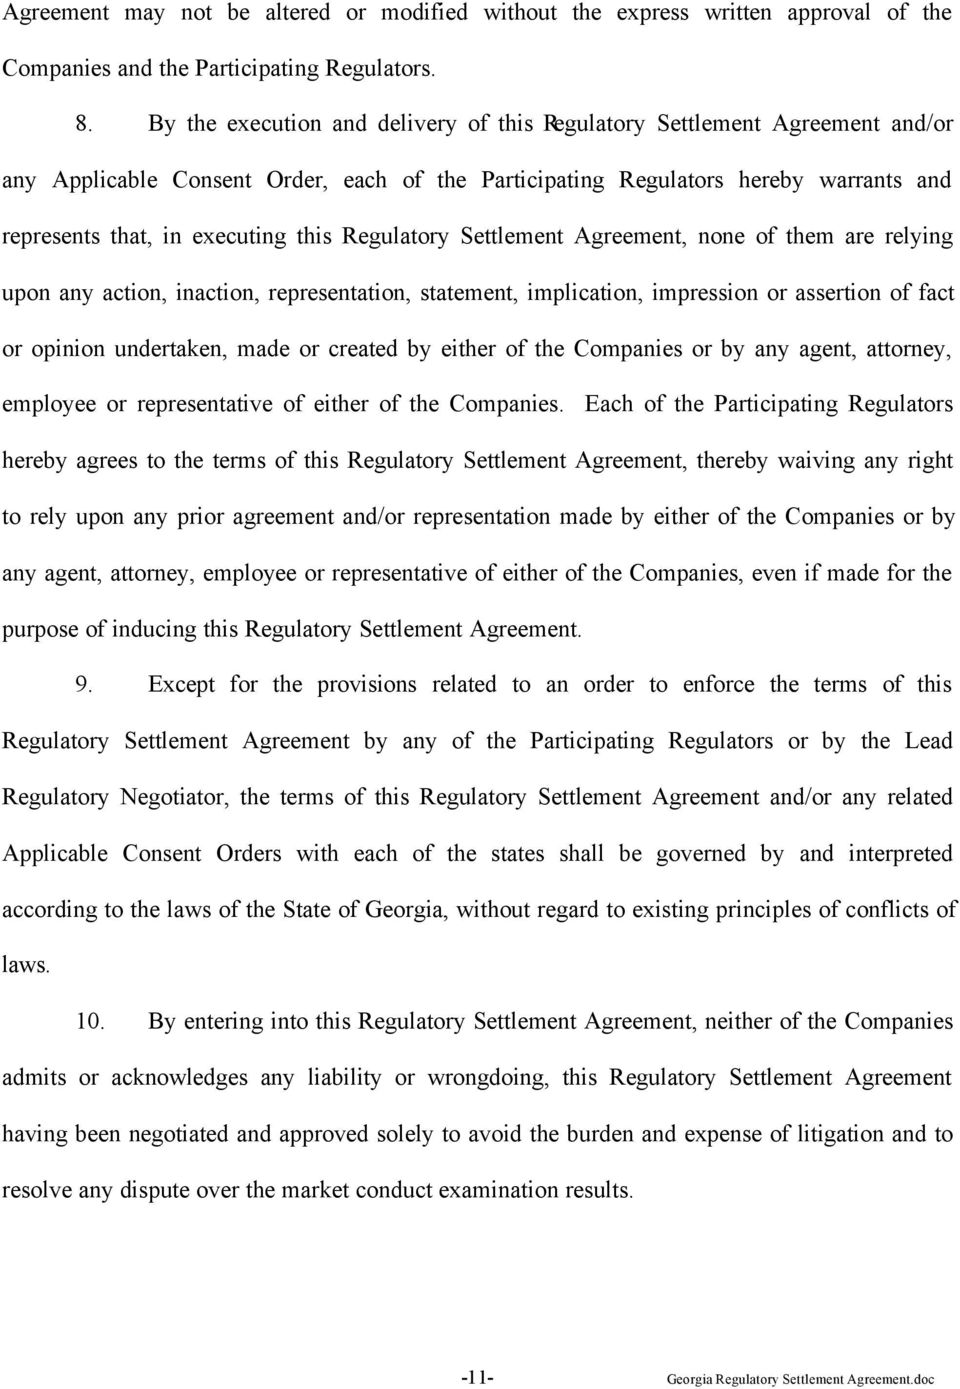 Regulatory Settlement Agreement, none of them are relying upon any action, inaction, representation, statement, implication, impression or assertion of fact or opinion undertaken, made or created by